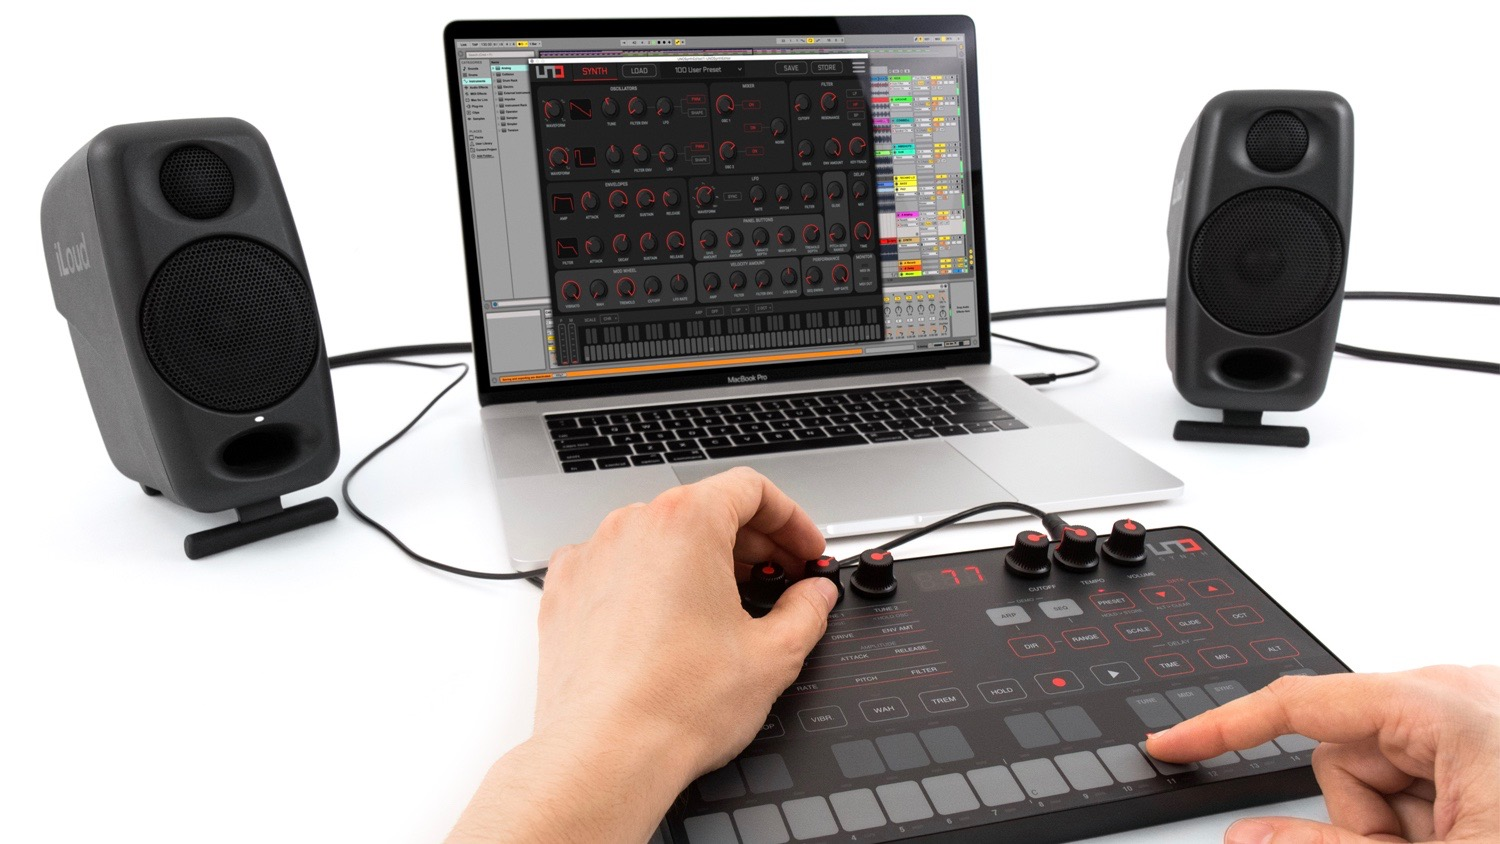 IK Multimedia's Uno synth editor promises seamless control